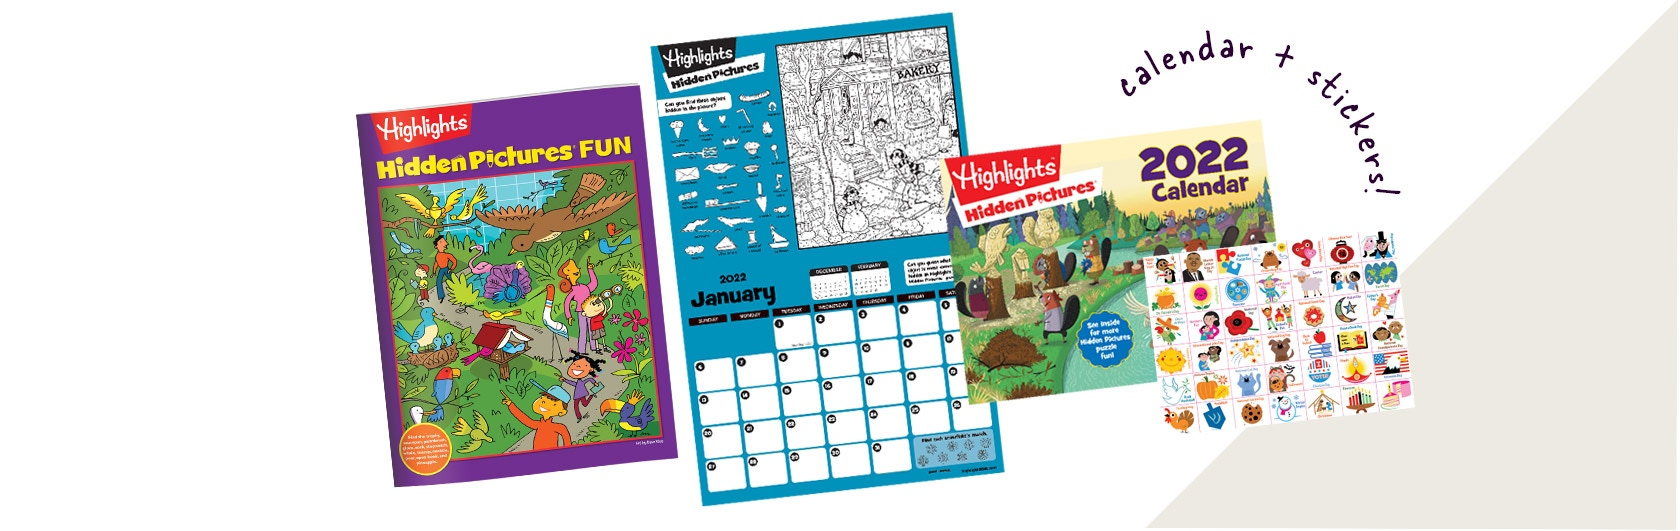 2022 Hidden Pictures calendar with stickers and Hidden Pictures booklet with challenging puzzles.